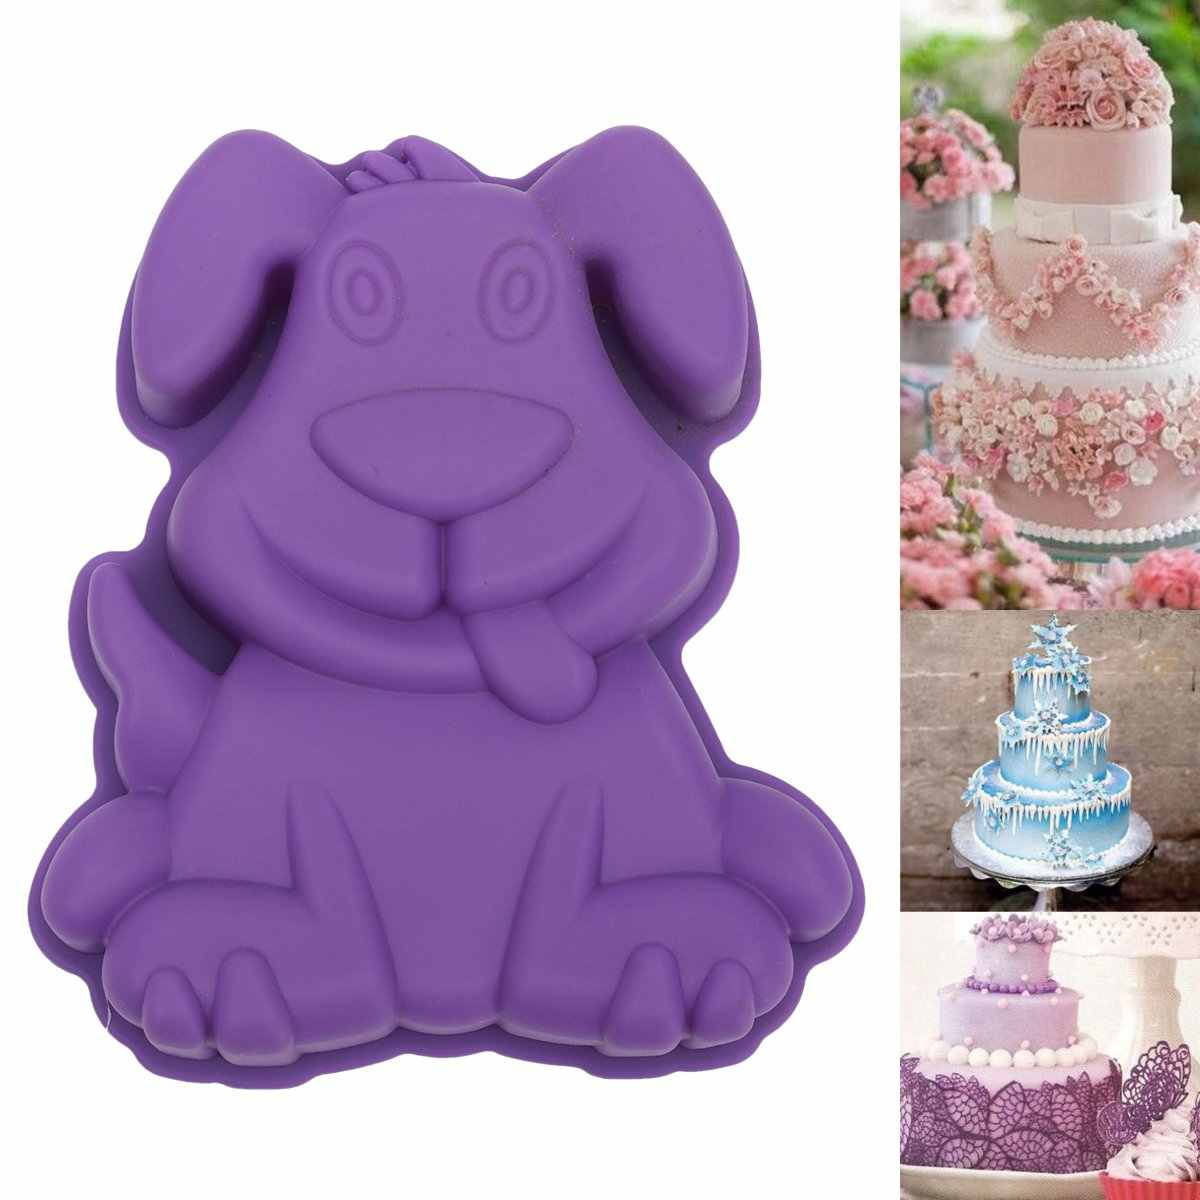 Silicone 3D Lovely Cartoon Dog Fondant Cake Mold Chocolate Mousse Mould Modelling Bakeware DIY Kitchen Baking Decorating Tools